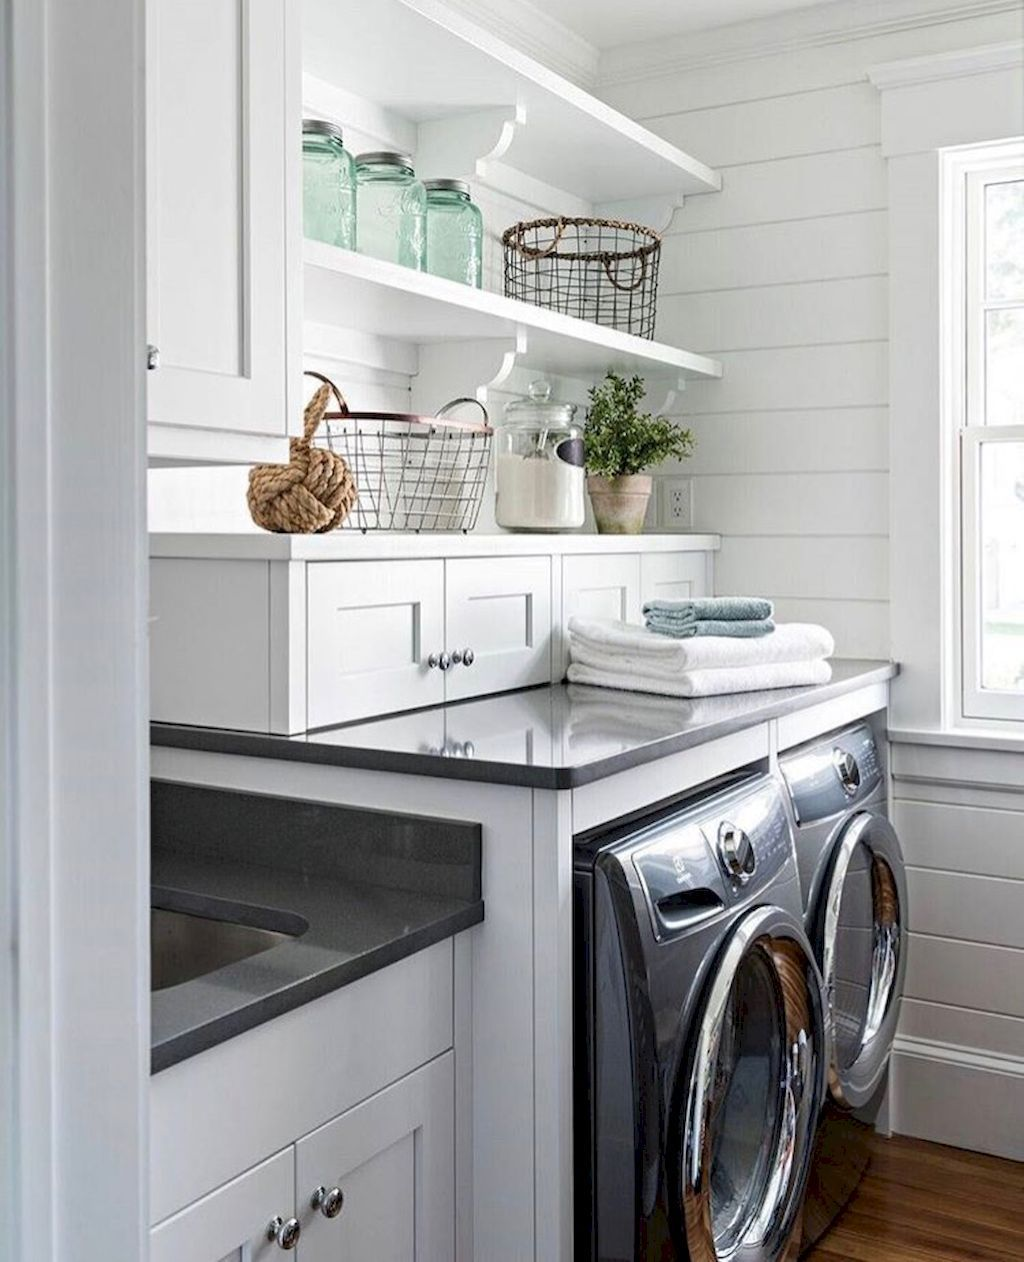 Amazing Farmhouse Laundry Room Decorating Ideas 16 Farmhouse